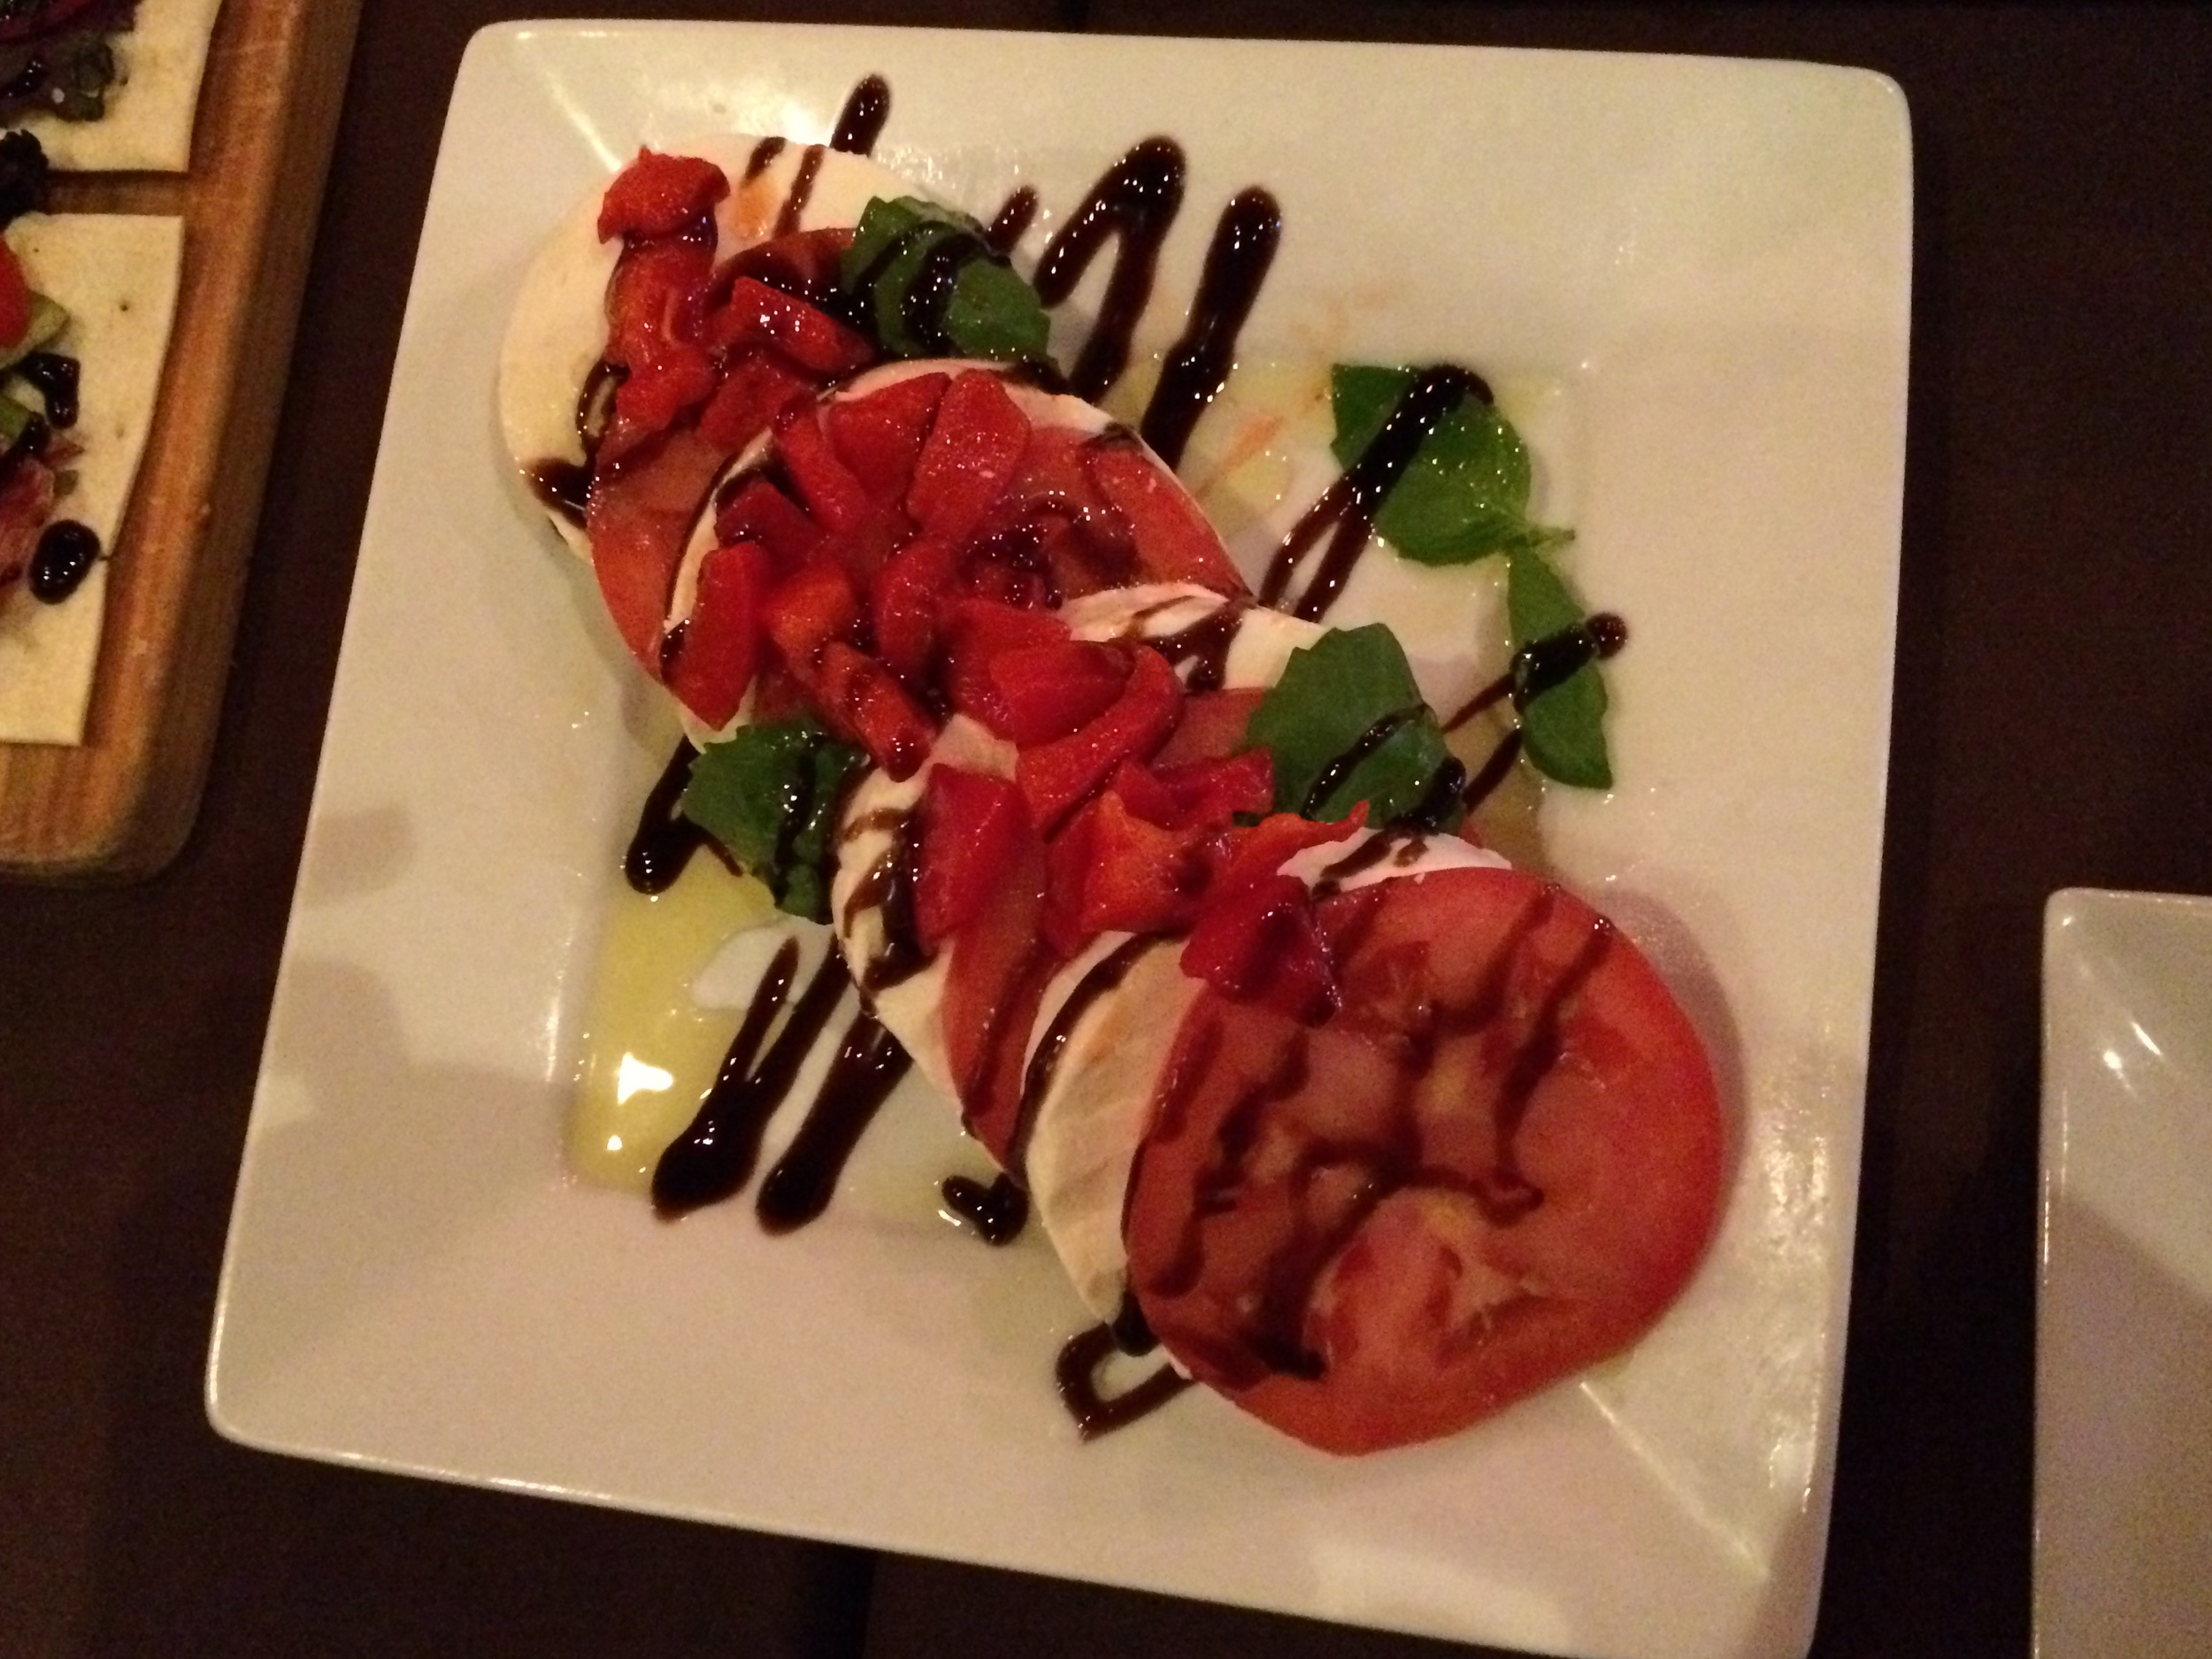 A fresh mozzarella platter with sliced tomato, roasted red peppers and a balsamic glaze drizzle.